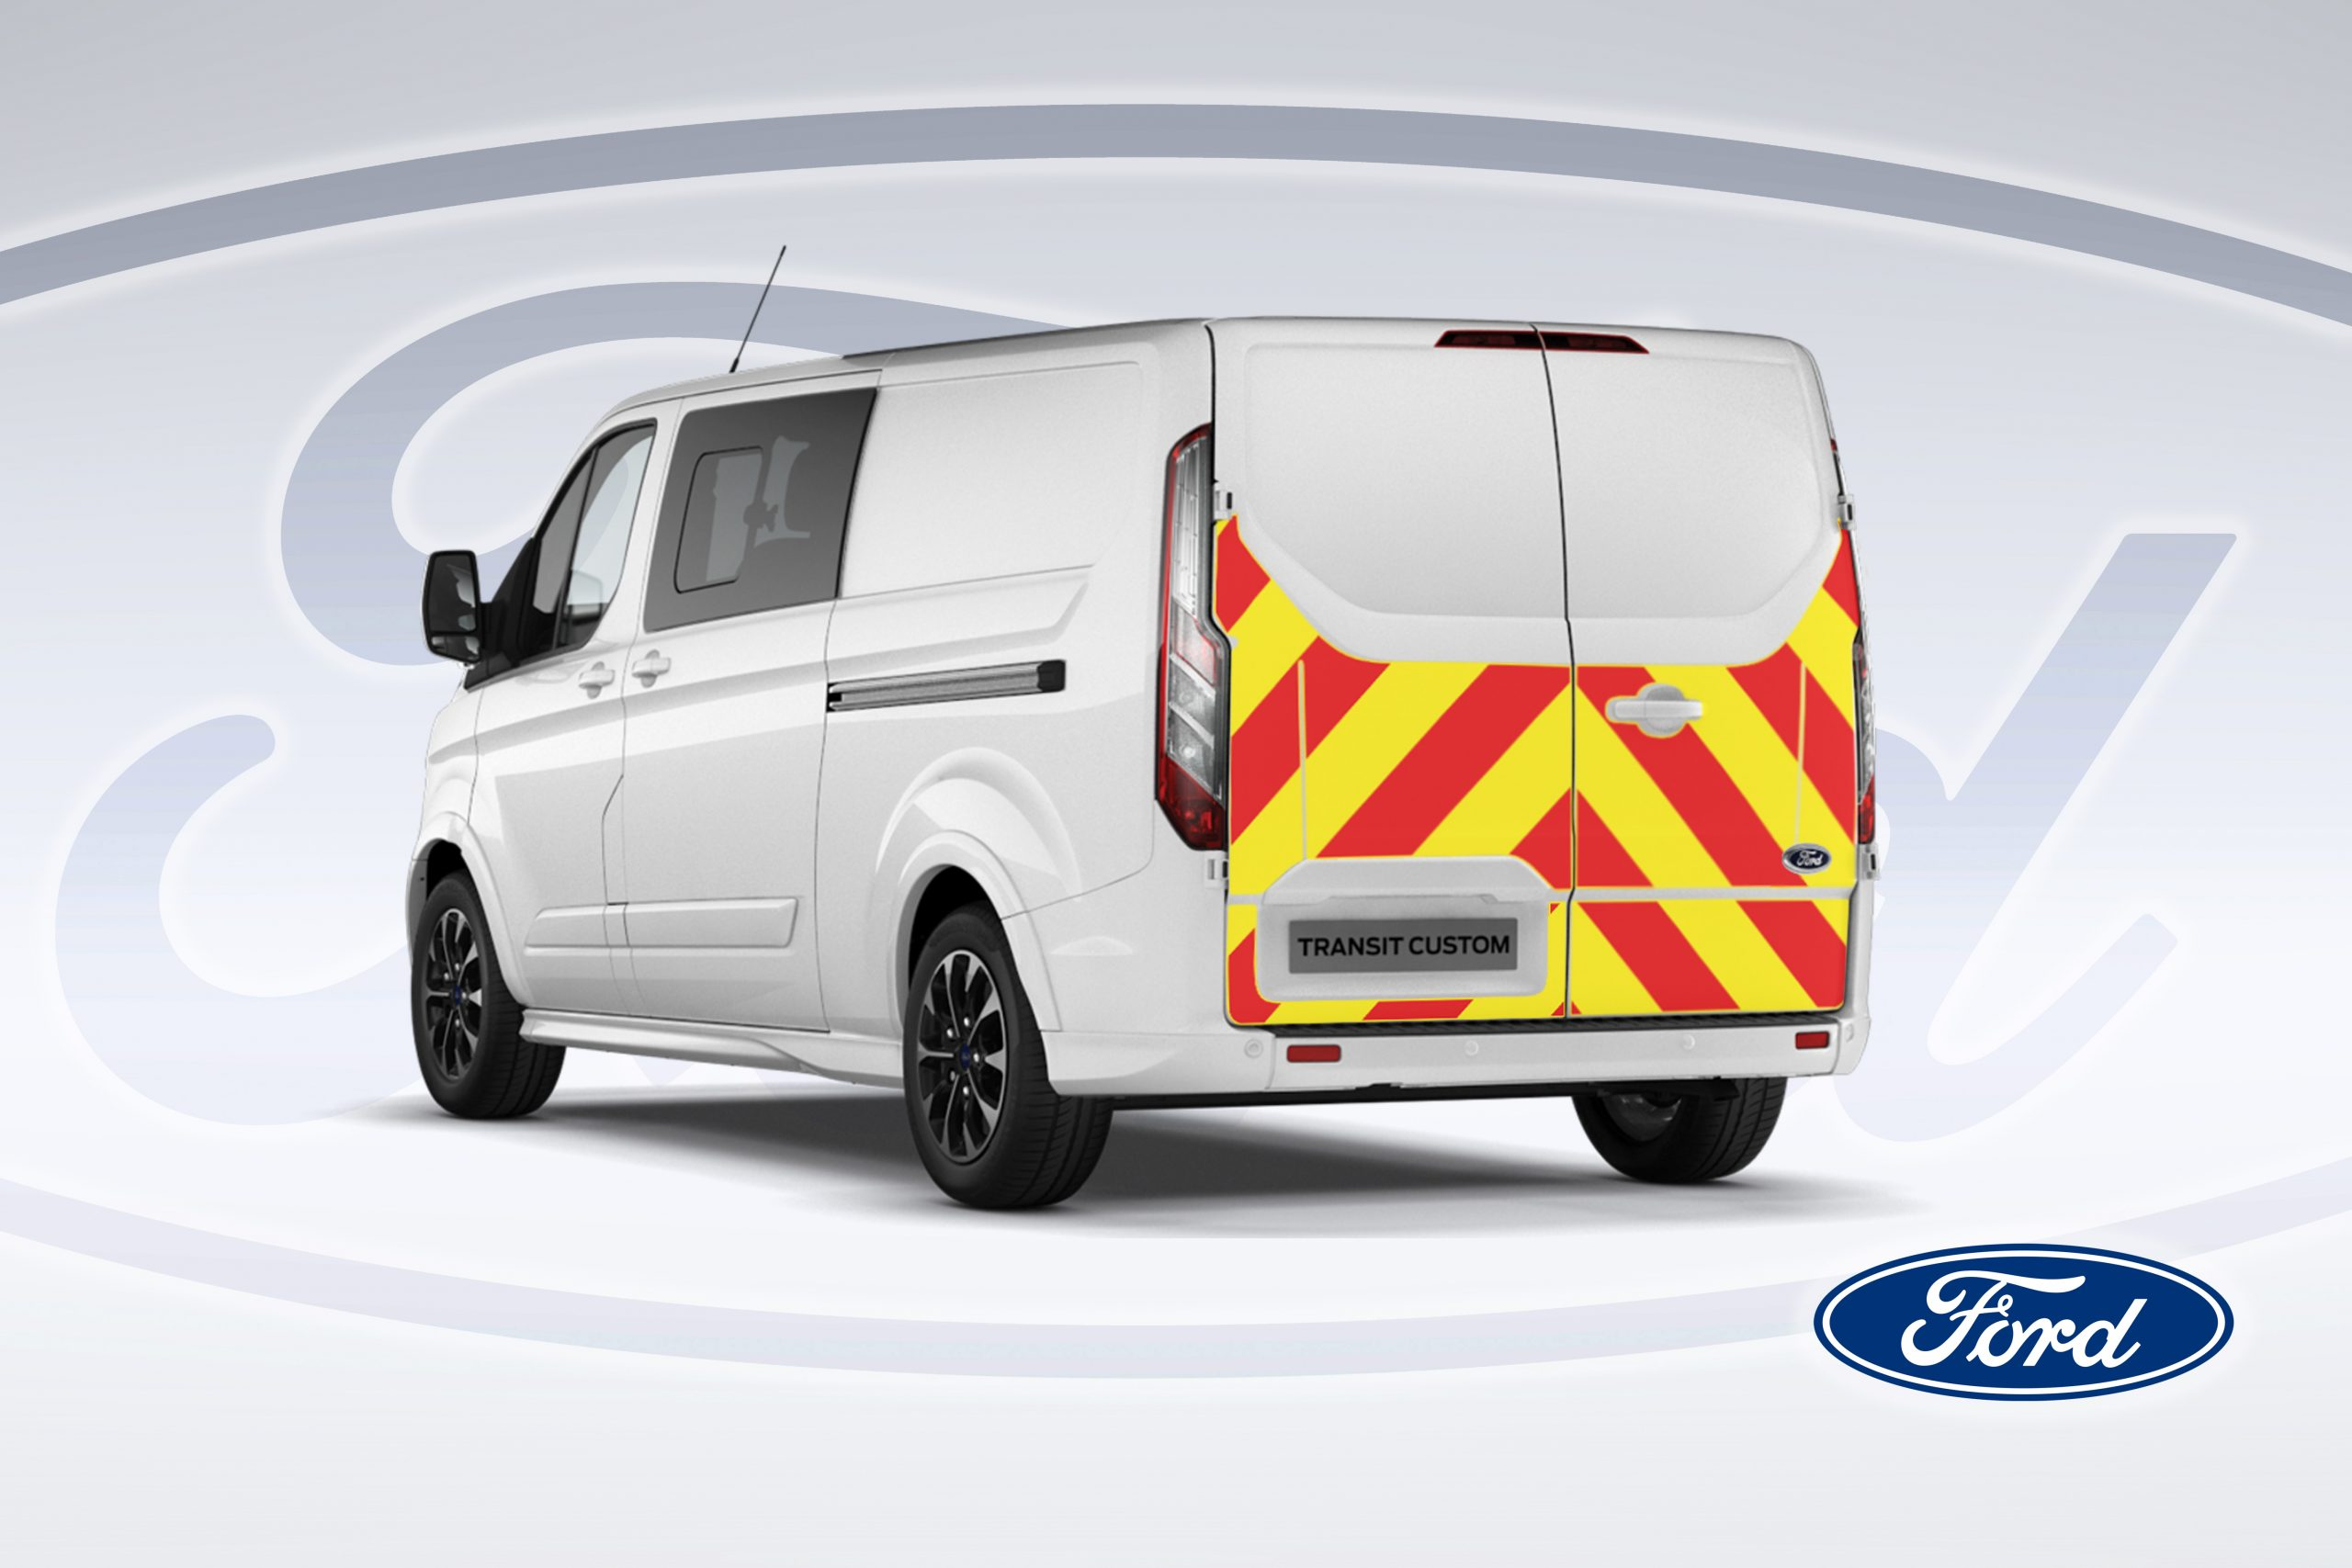 Pic showing an angled back view of Ford Transit Custom van with IM illuminated chevrons fitted